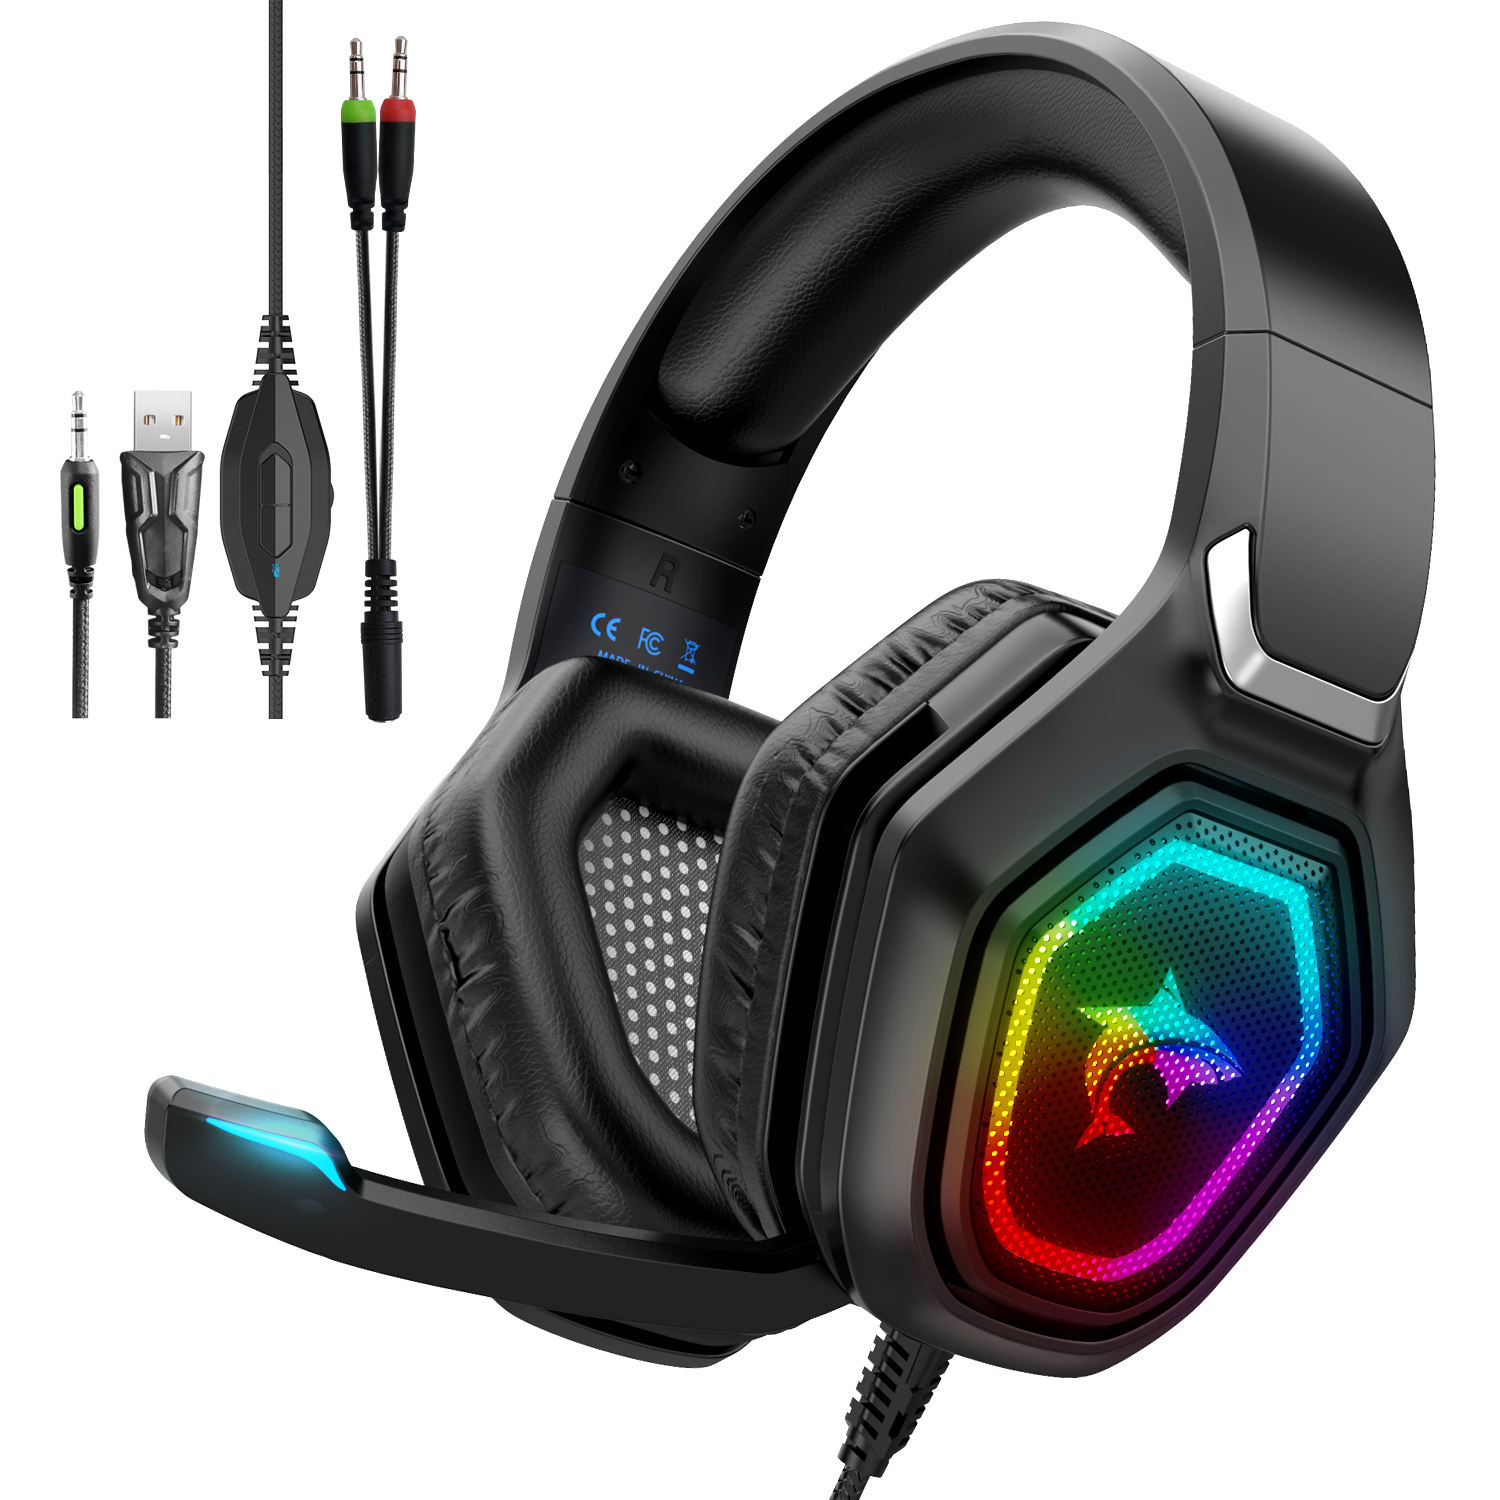 Usb wired gaming headset microphone and light Stereo Sound Headsets for PS4 PC gamer headphones